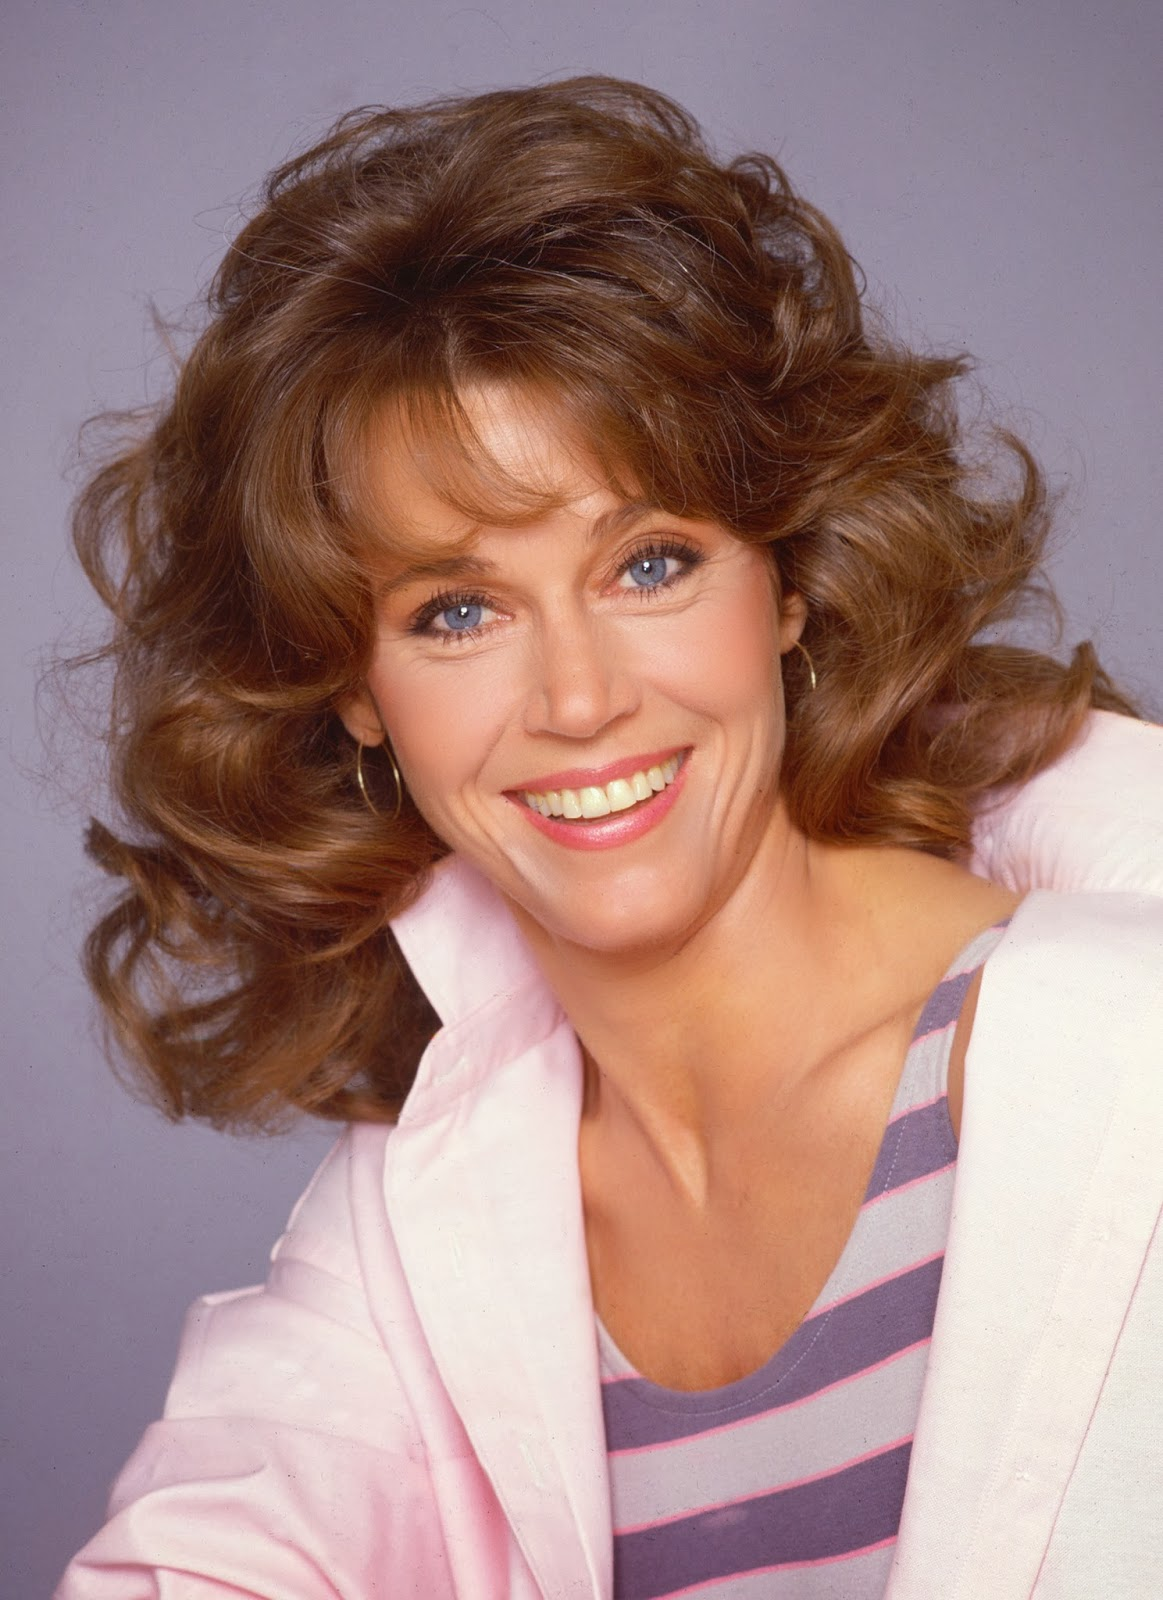 In Pictures Jane Fonda likewise Oscar Darkness Orangeness JhNDNnGz69AYM likewise Disneys Beauty And The Beast besides Nervo further Ballroom At The Ben. on facebook academy award